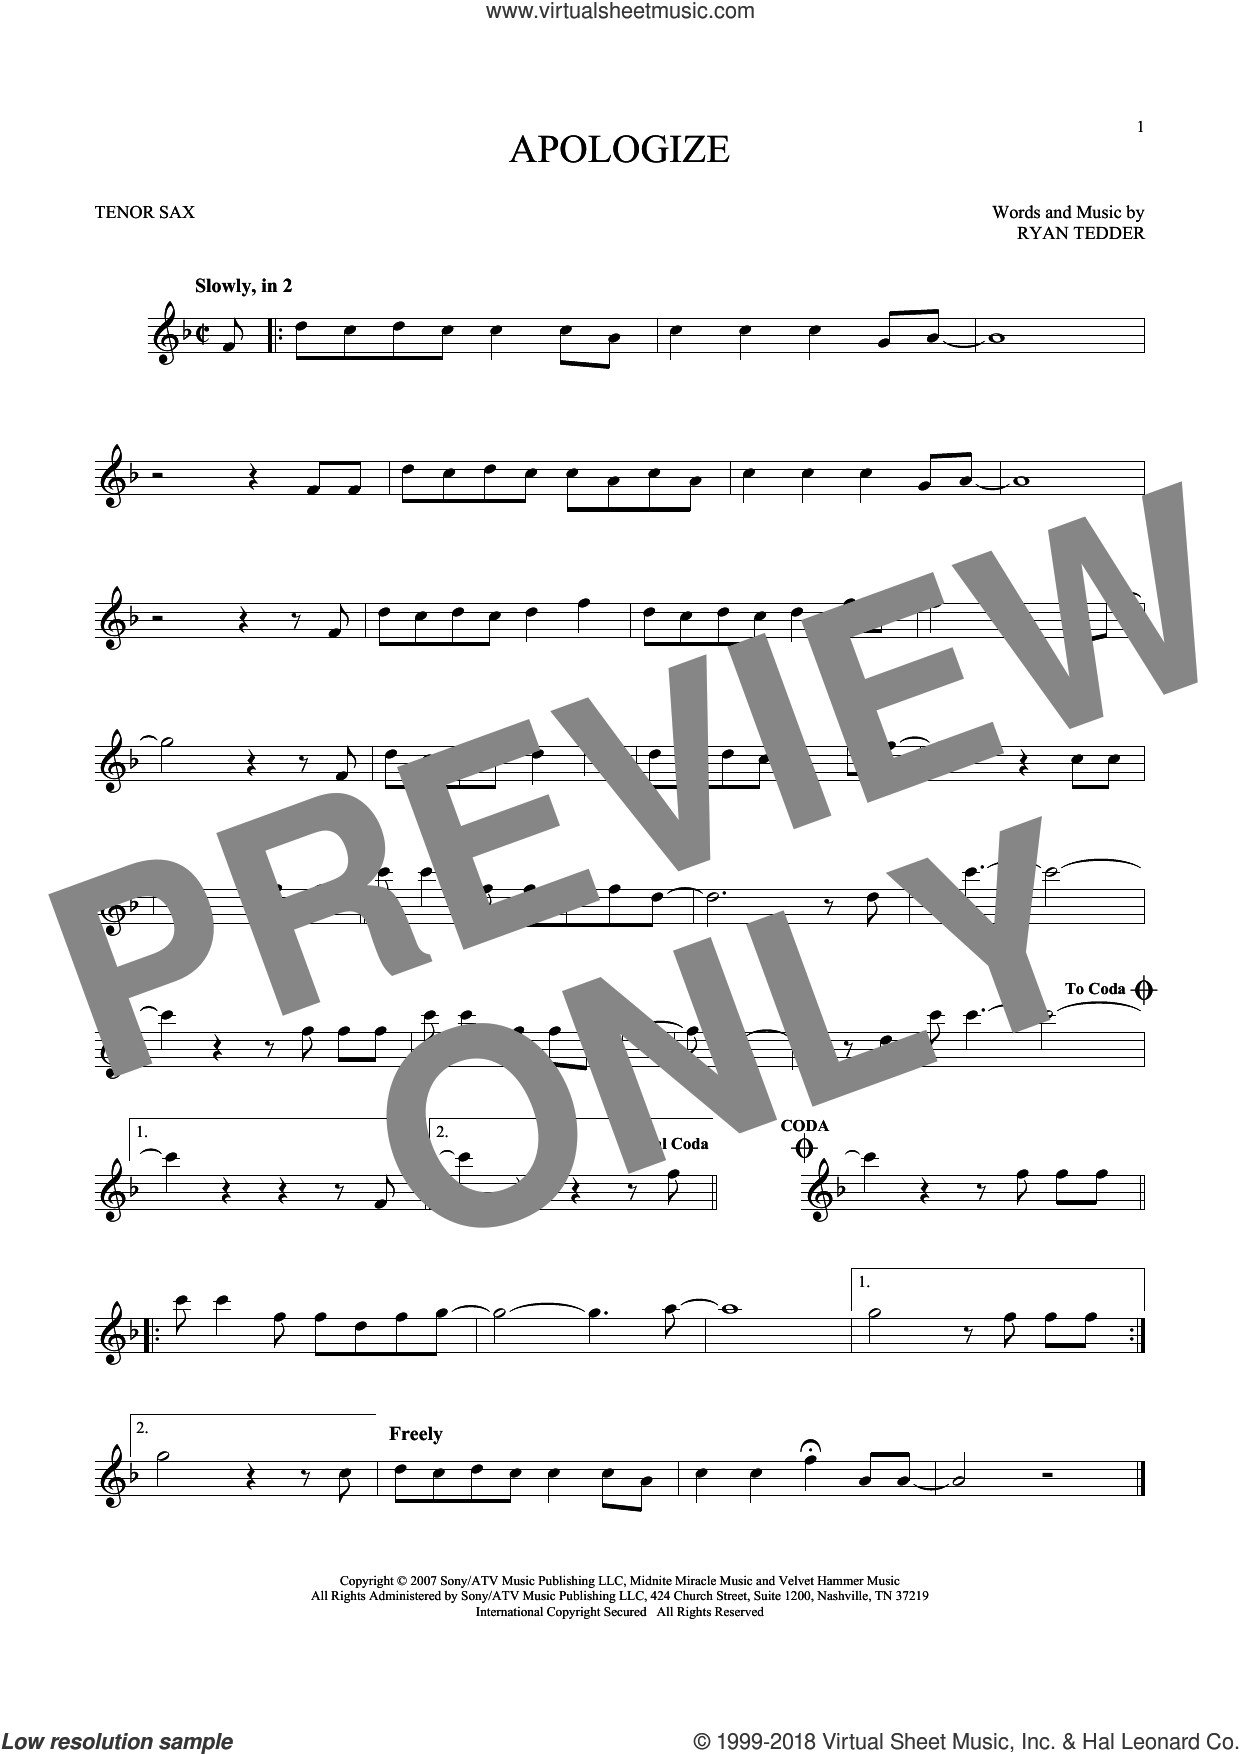 Apologize sheet music for tenor saxophone solo ( Sax) by Timbaland featuring OneRepublic and Ryan Tedder, intermediate tenor saxophone ( Sax)